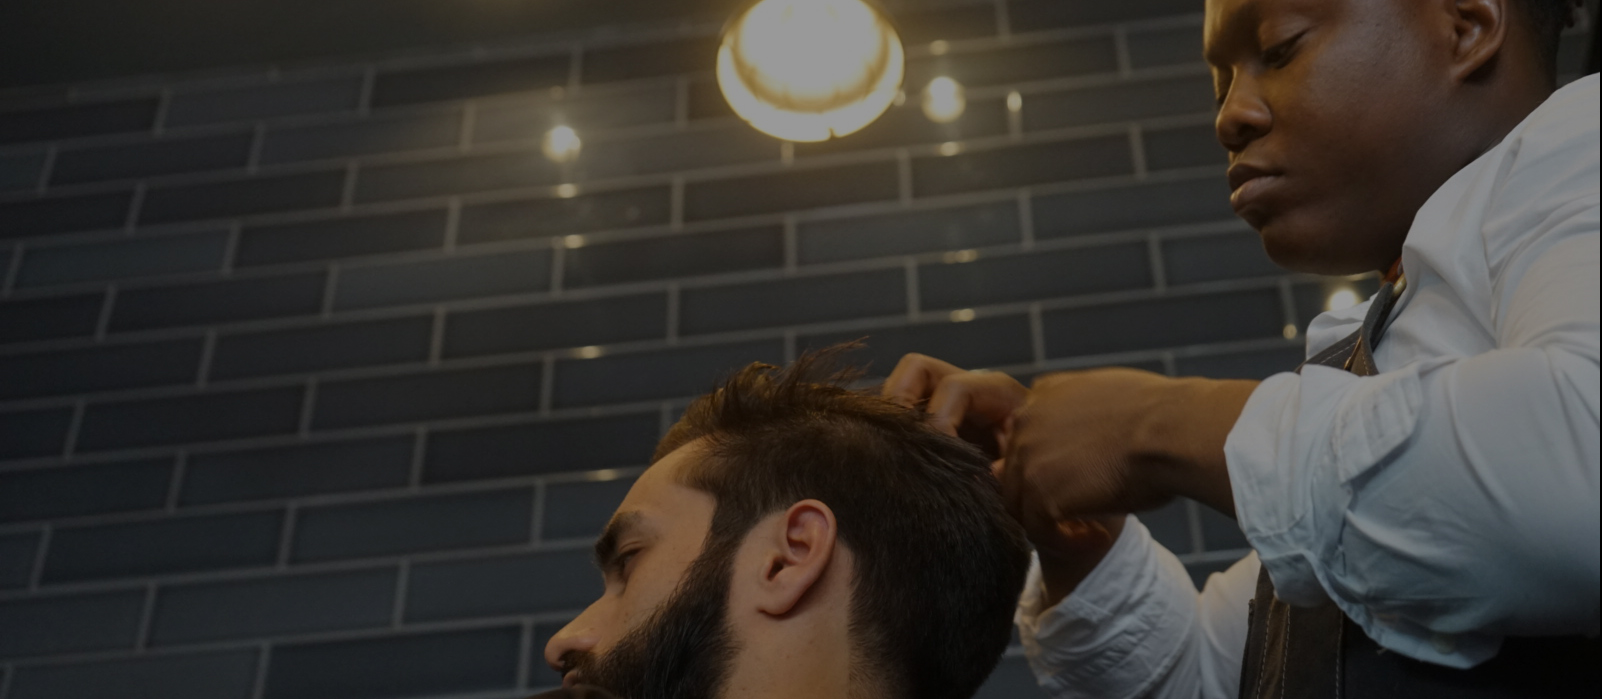 https://www.portersbarbers.co.uk/wp-content/uploads/2016/09/img02.jpg